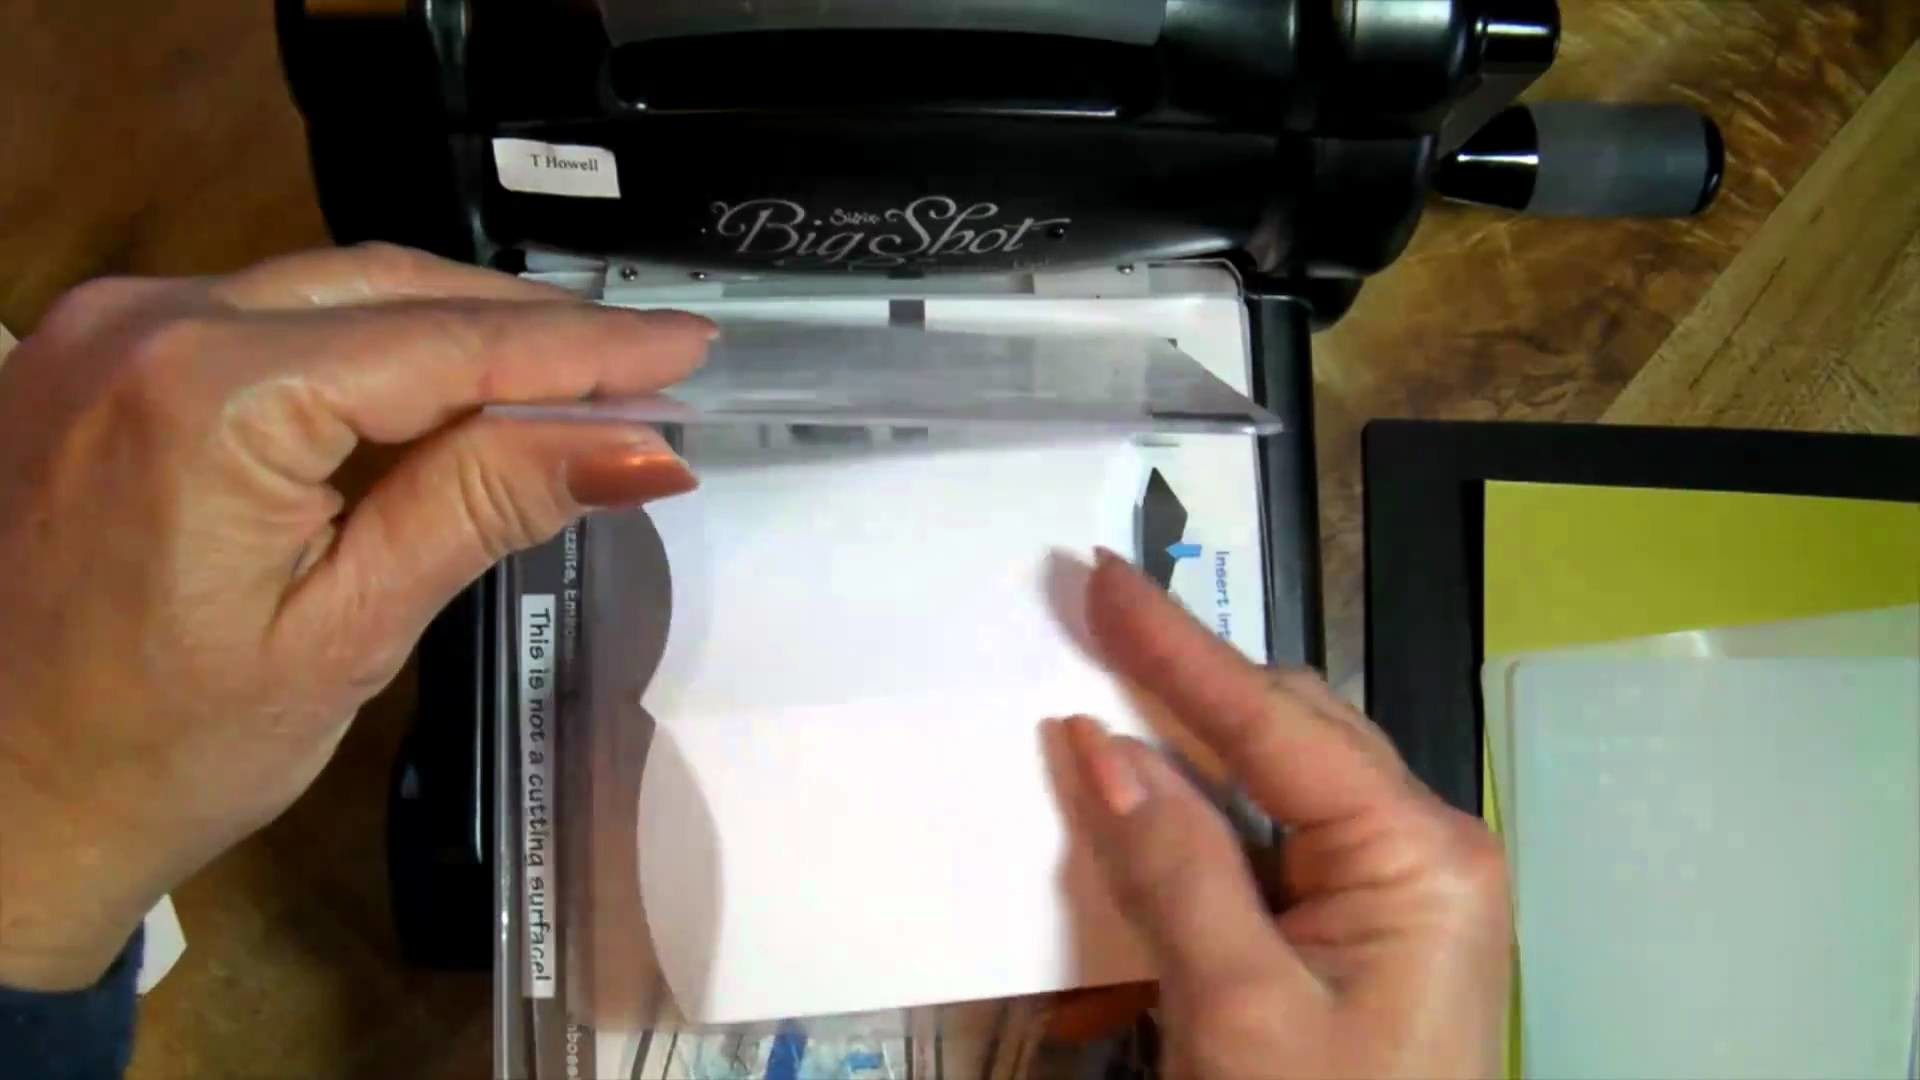 Sizzix Pillow Box Die-How to cut 4 shapes from 1 card stock